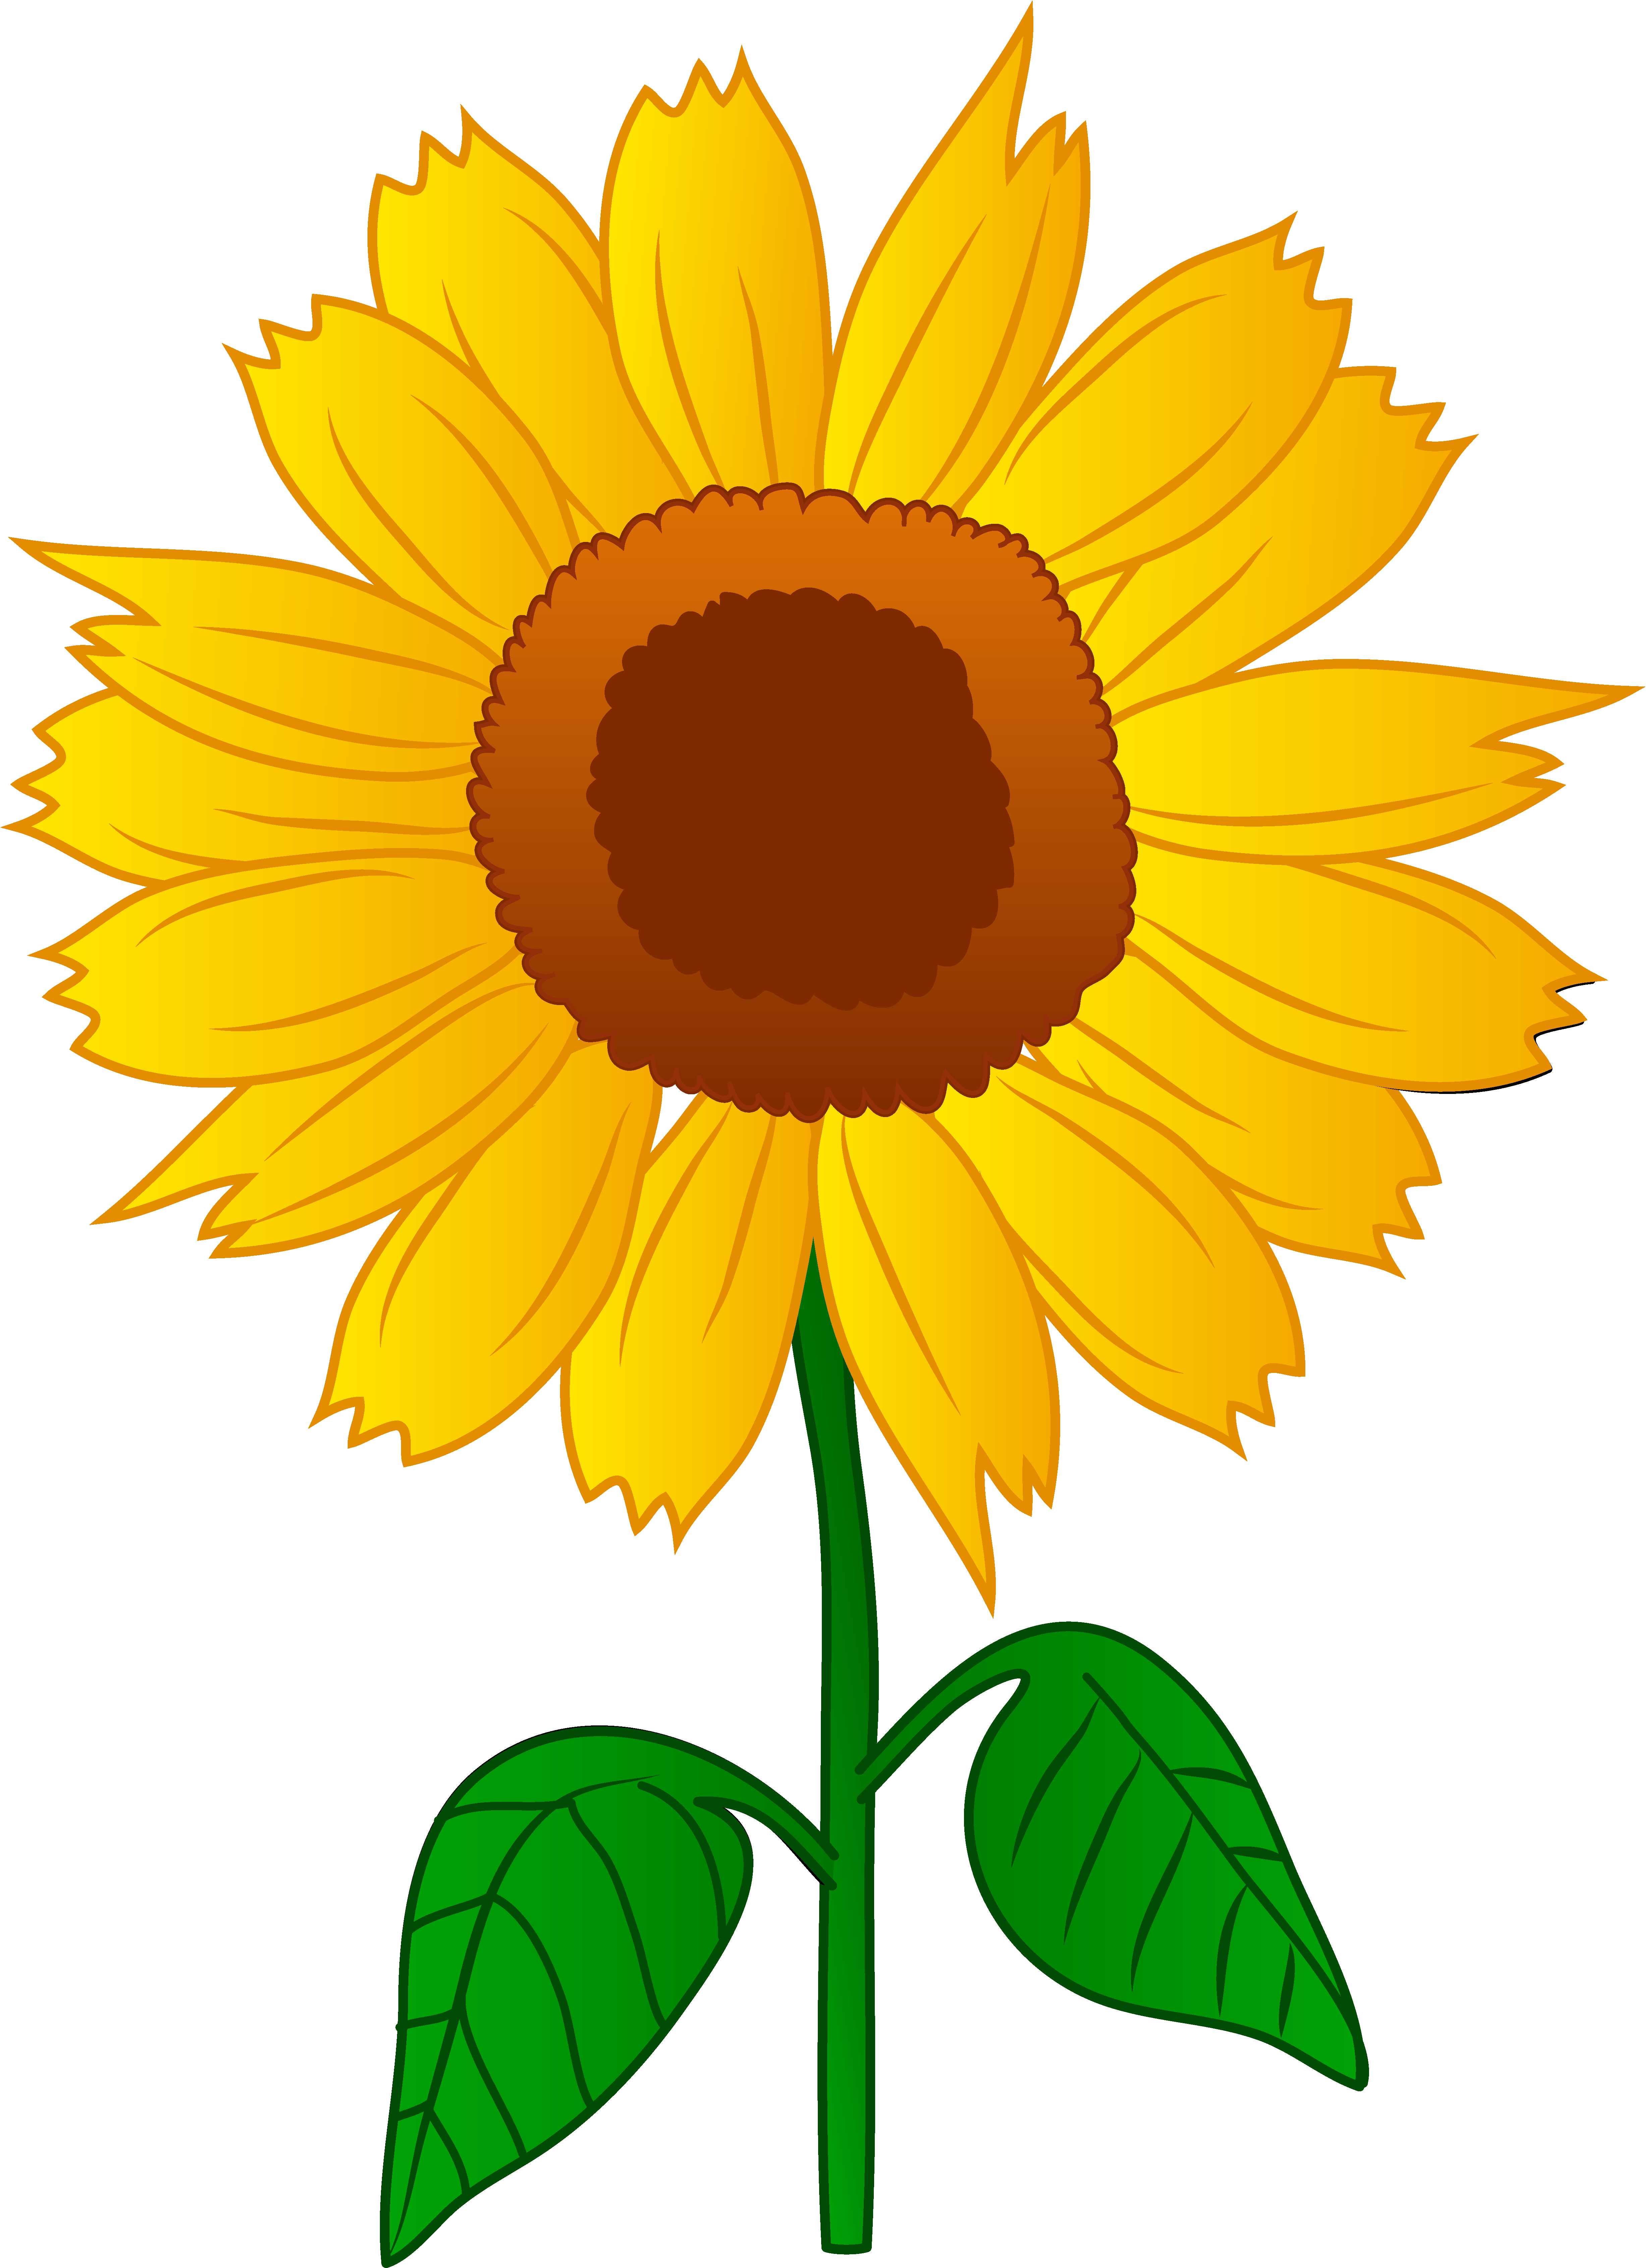 Triipy clipart sunflower Art Sunflower Printable Sunflower Clip